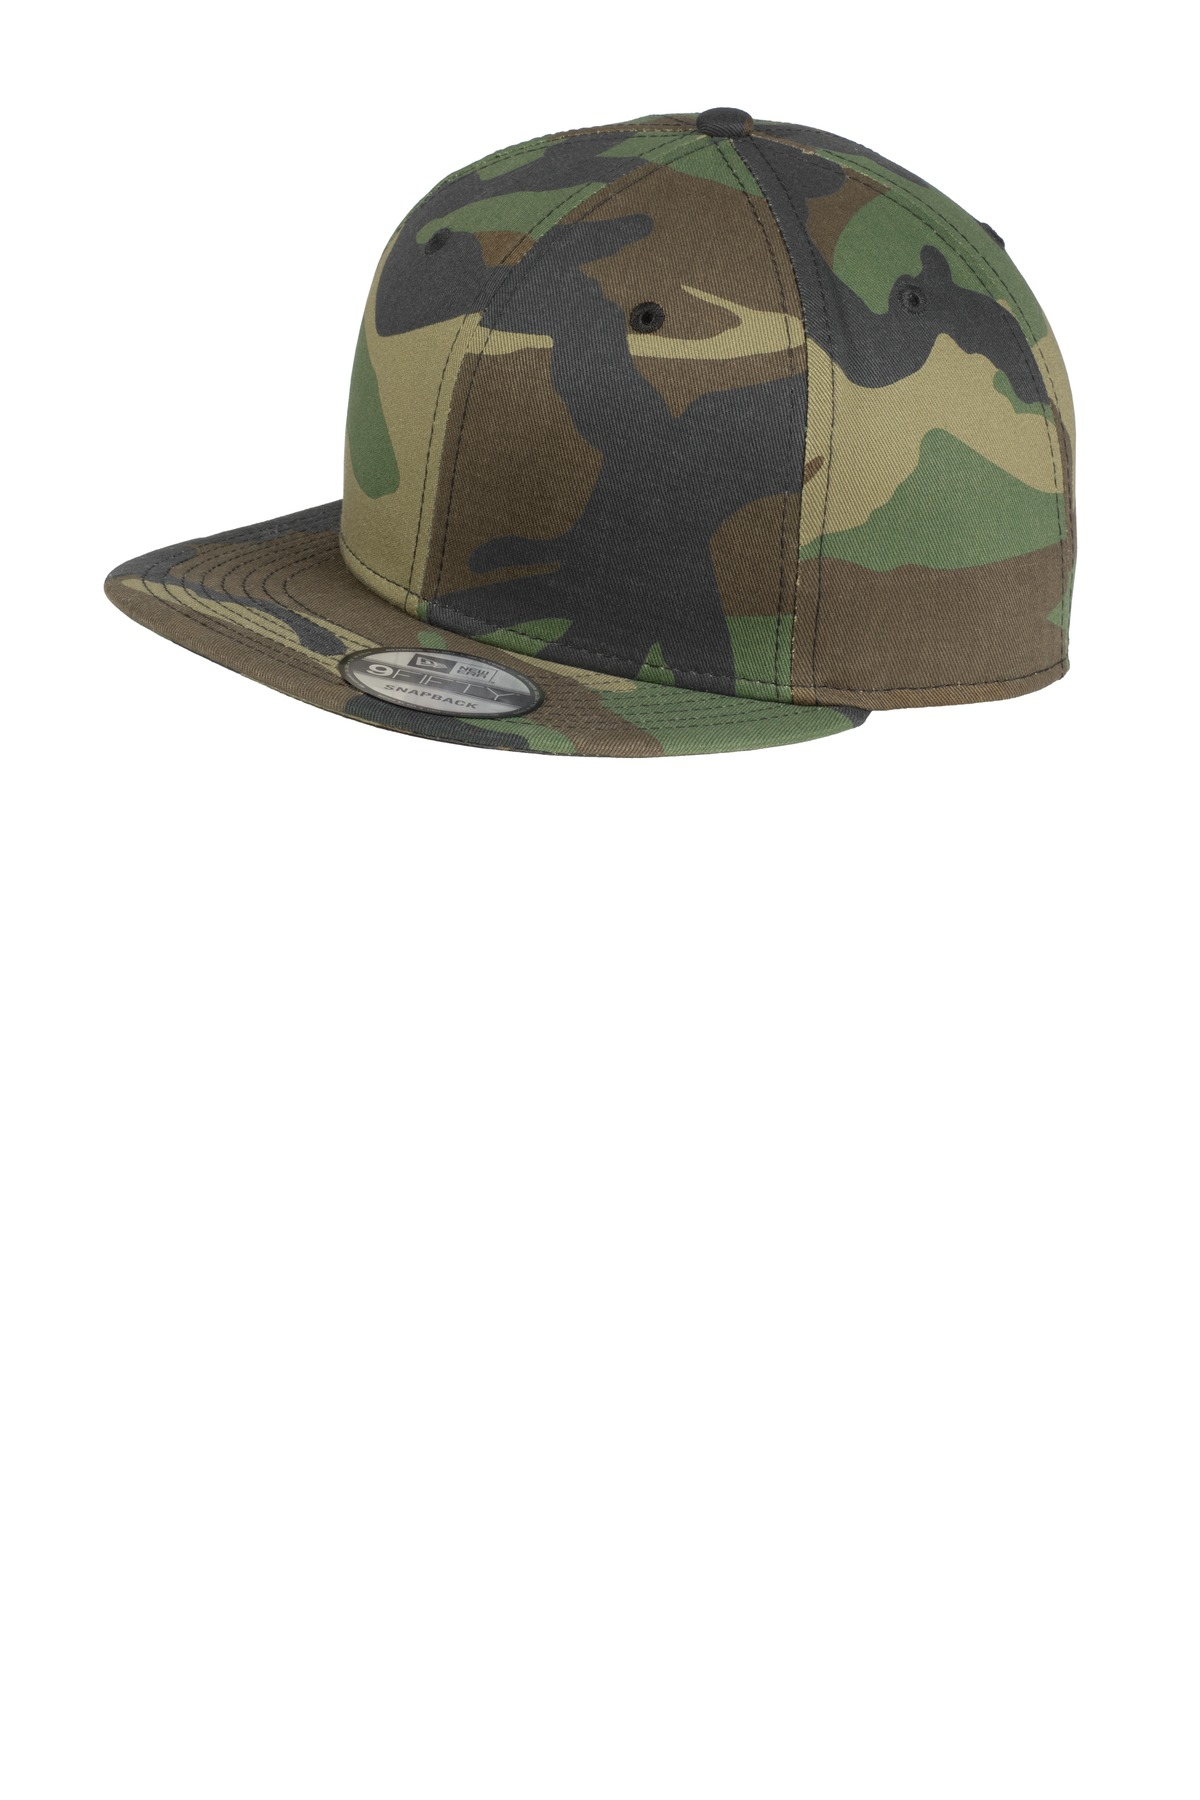 New Era ®  - Flat Bill Snapback Cap. NE400 - Camo